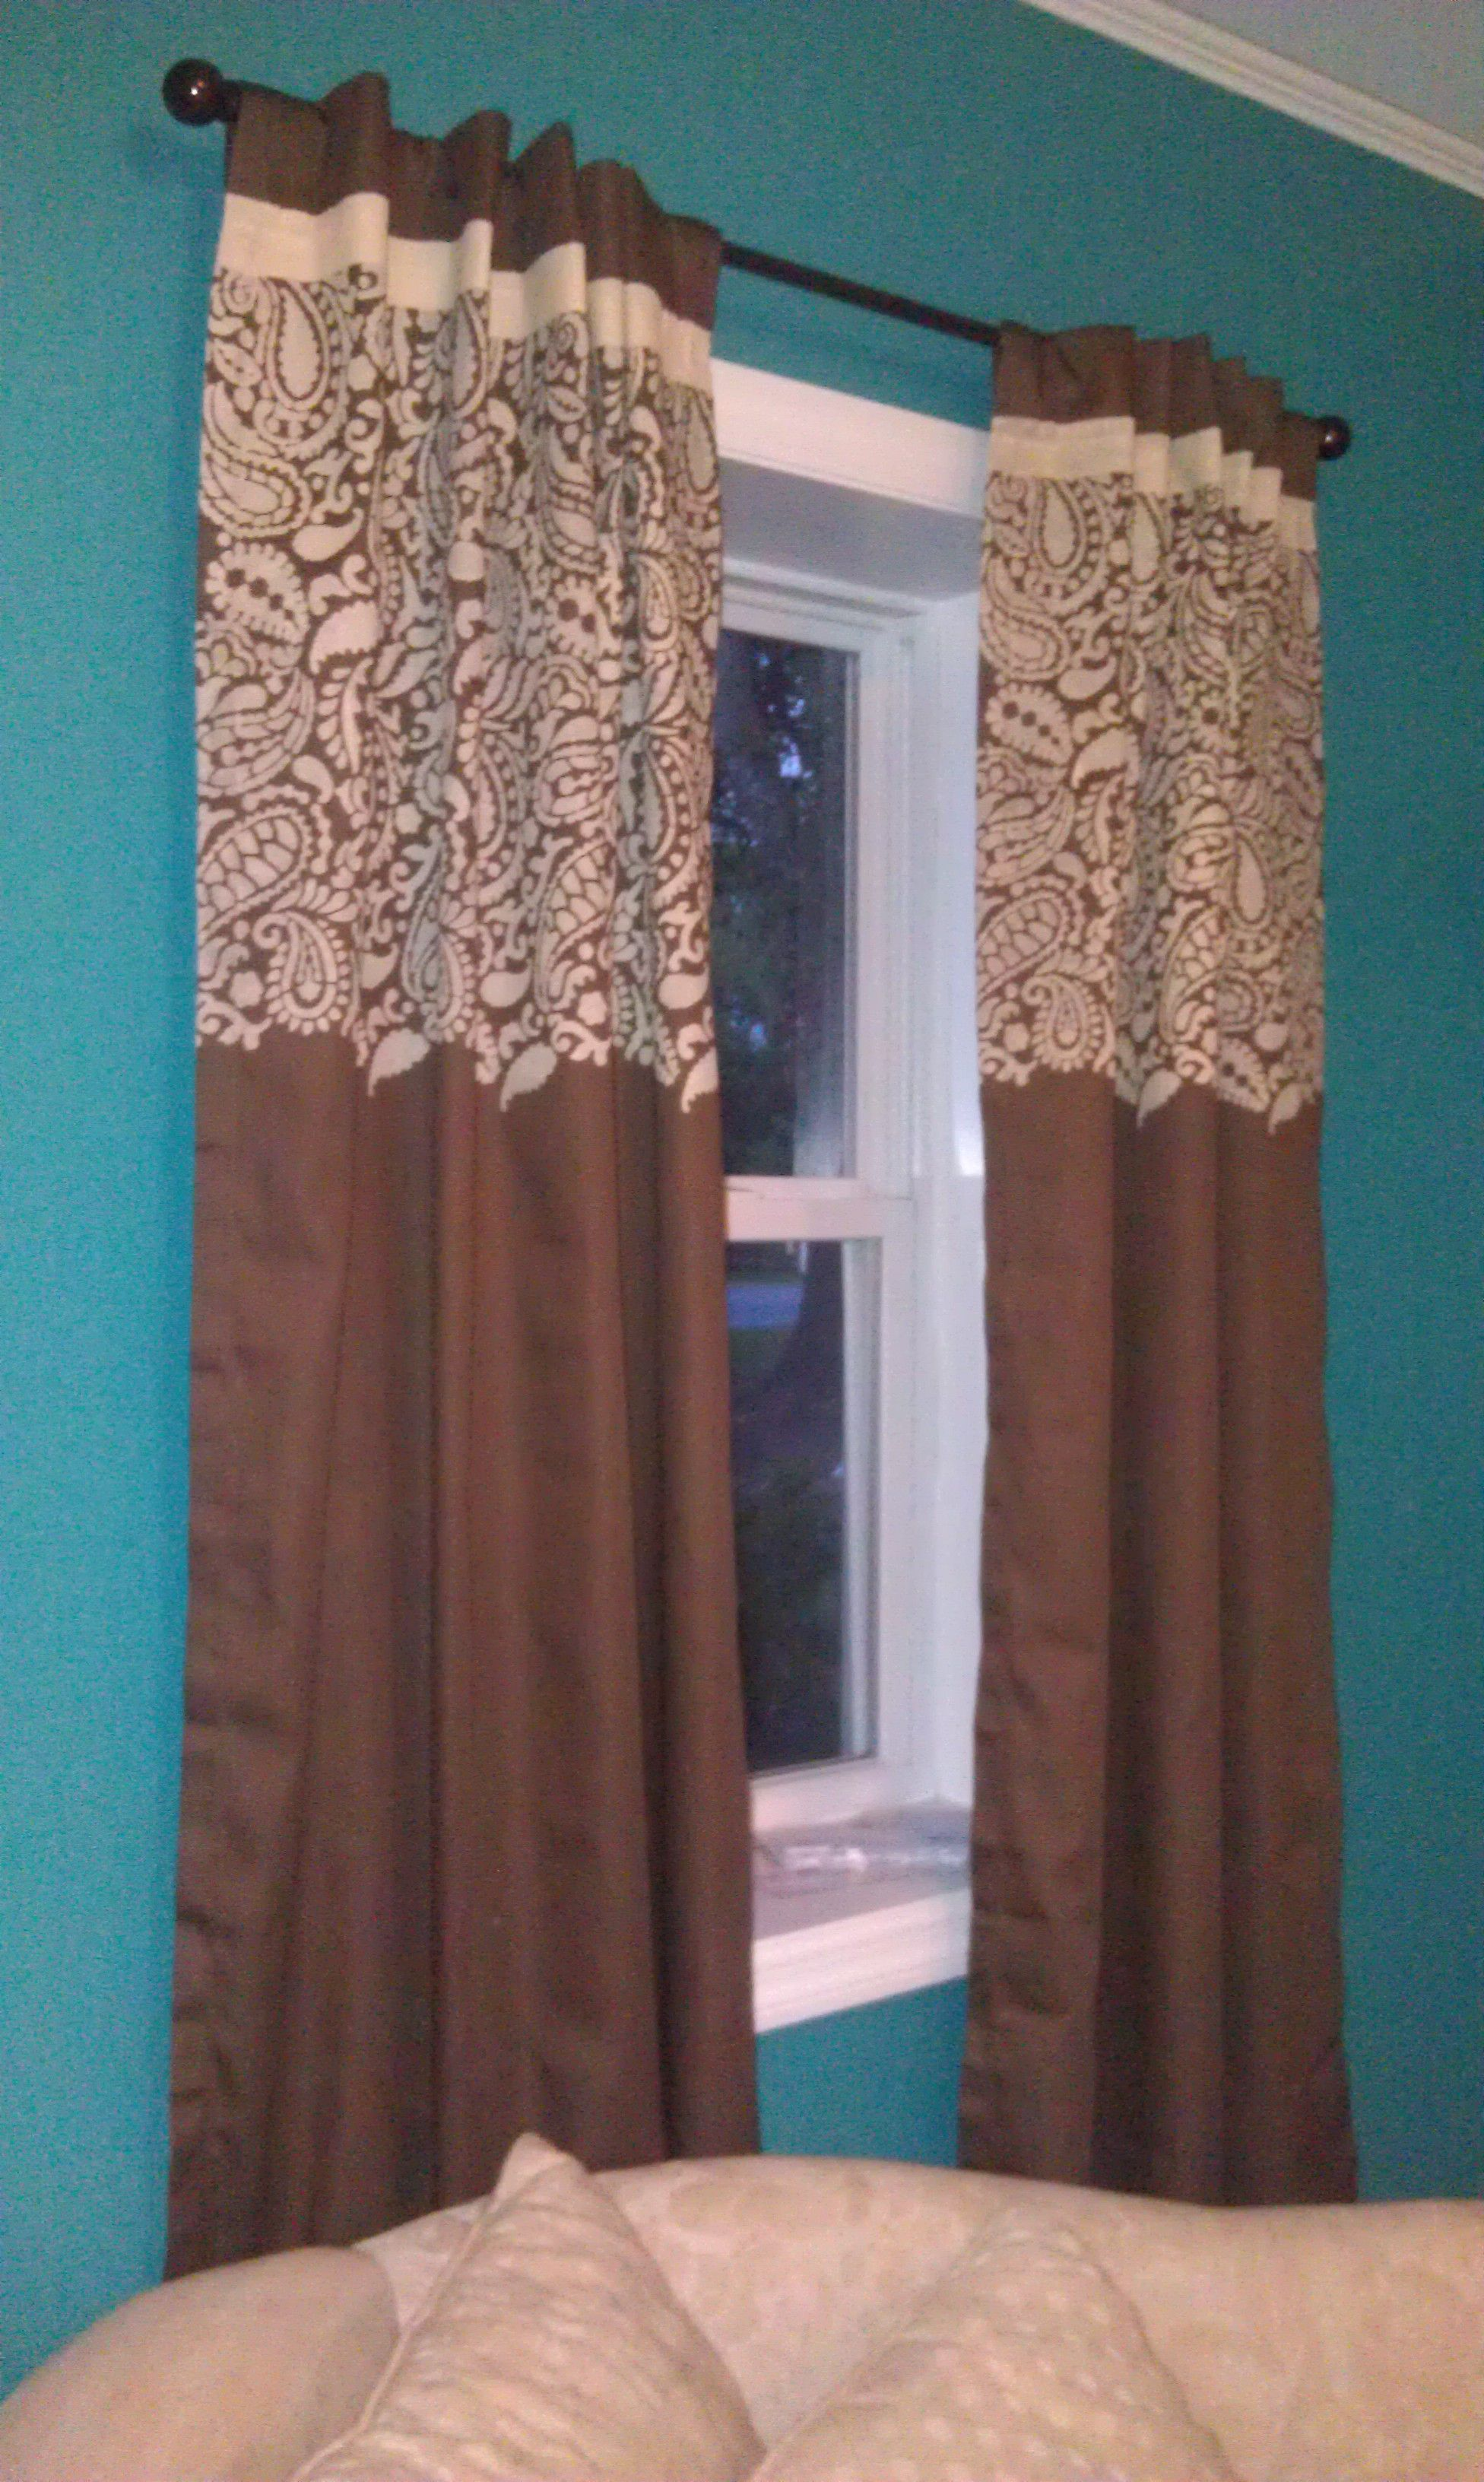 Kitchen nook window treatments  painted curtains  things i have tried  pinterest  painted